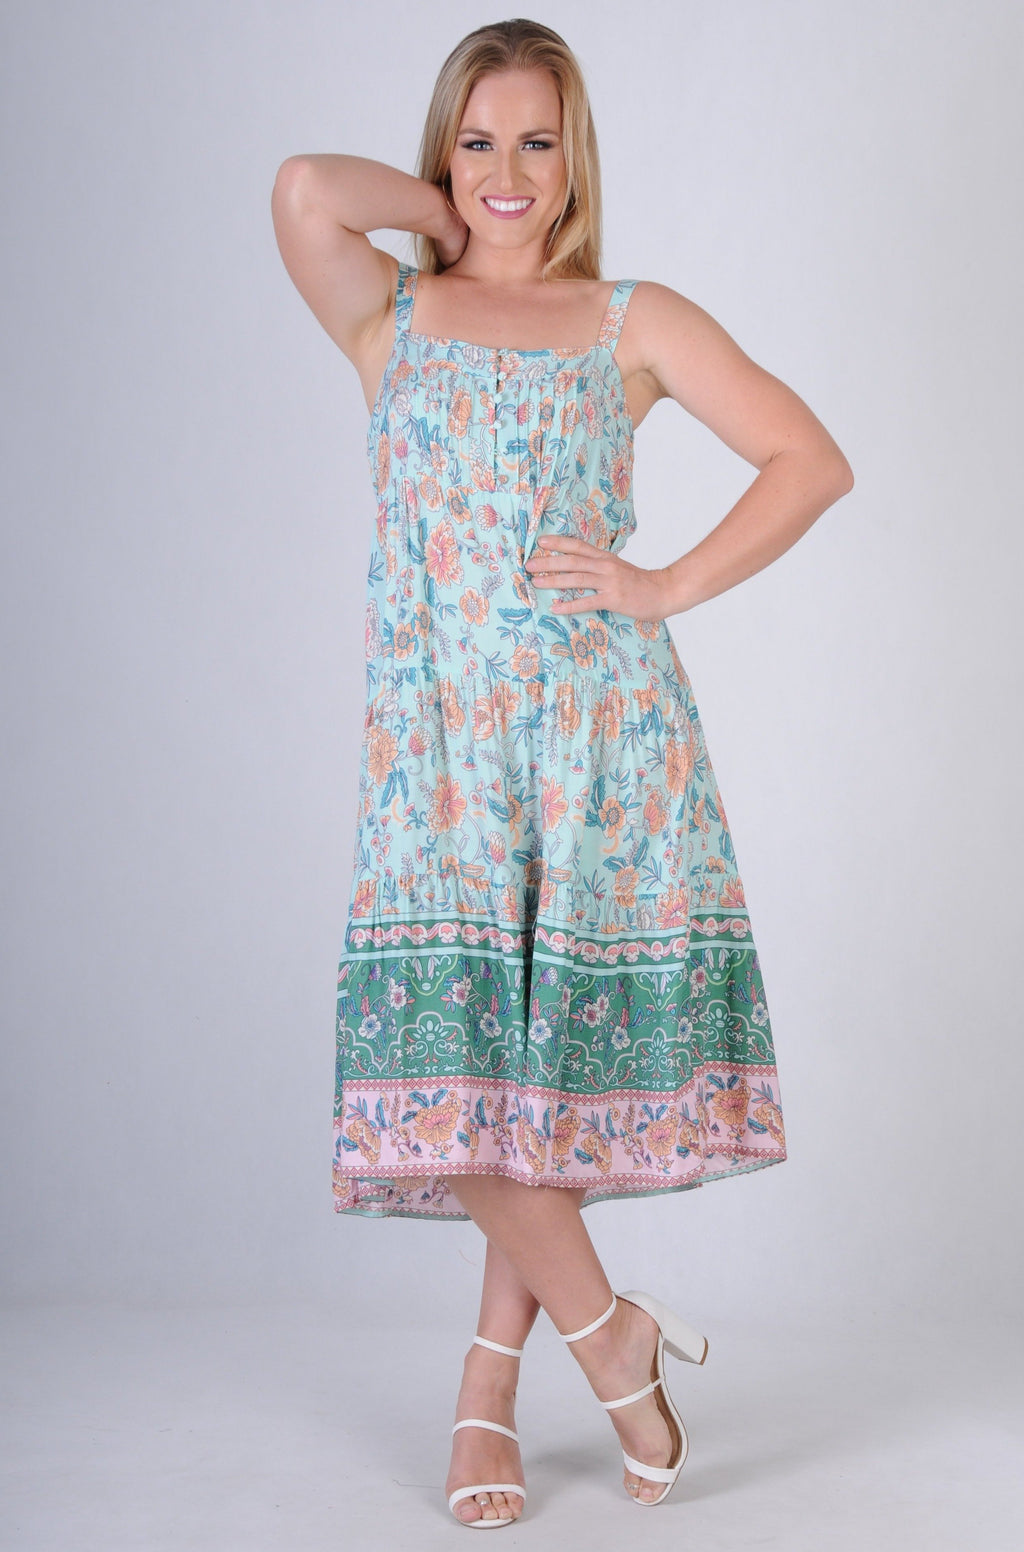 VJHD228 - GARDEN PARTY DRESS - MERMAID MINT